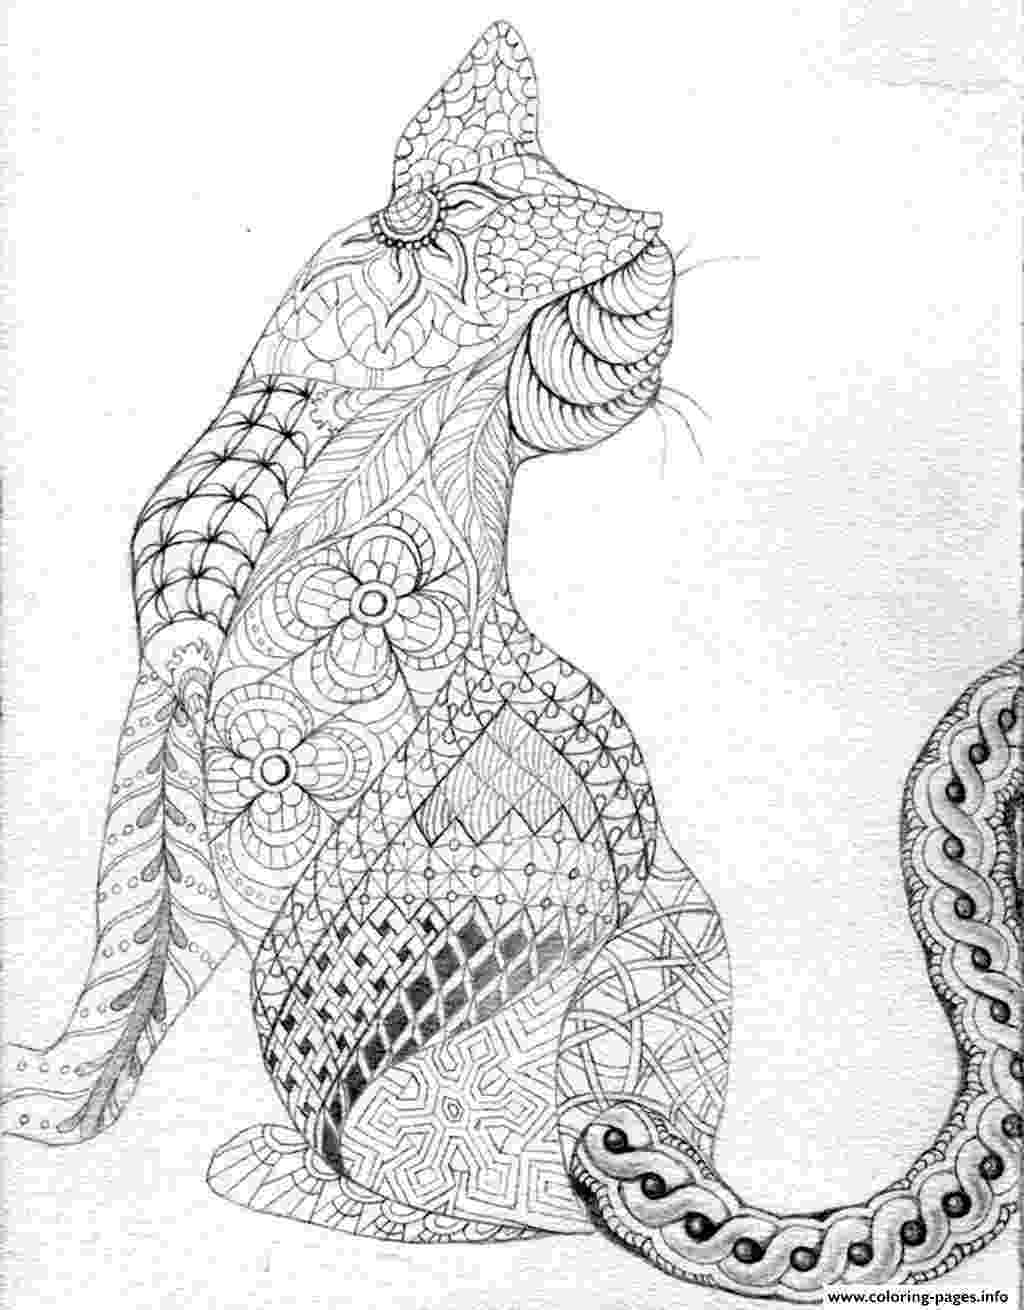 free online coloring pages for adults cats adult difficult cat from back coloring pages printable pages online cats for free adults coloring